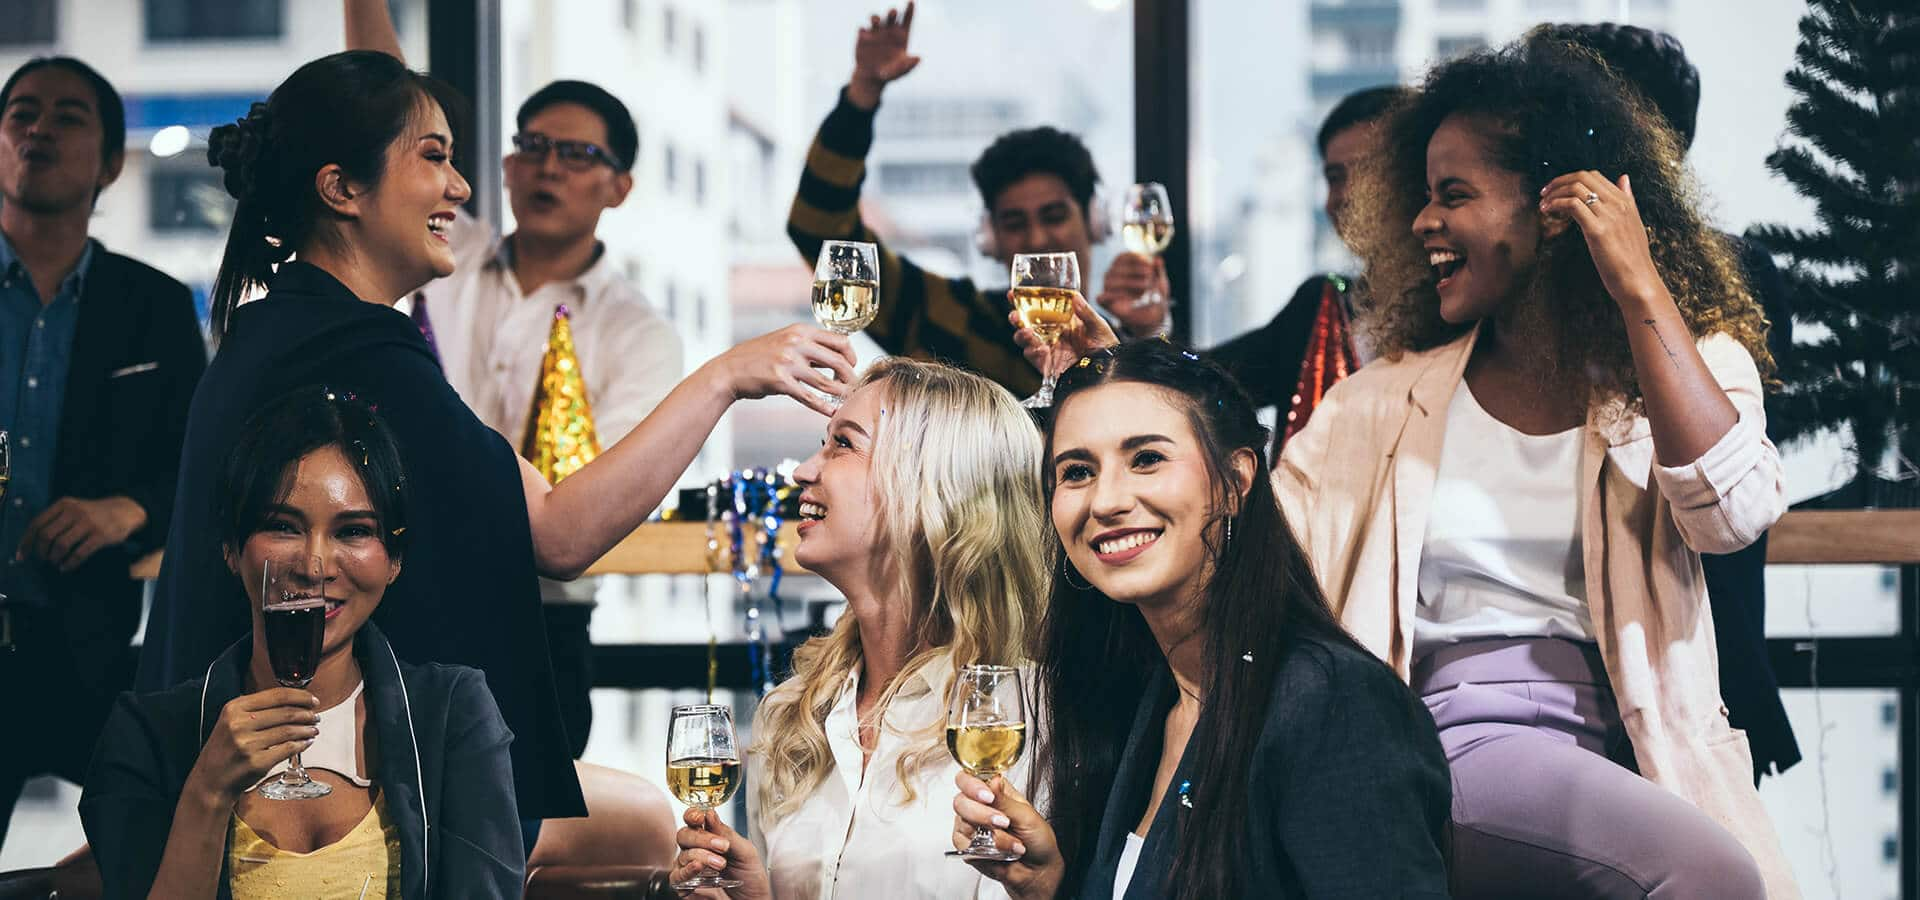 Hero image for 6 Ways to Plan a Corporate Event that Doesn't Suck